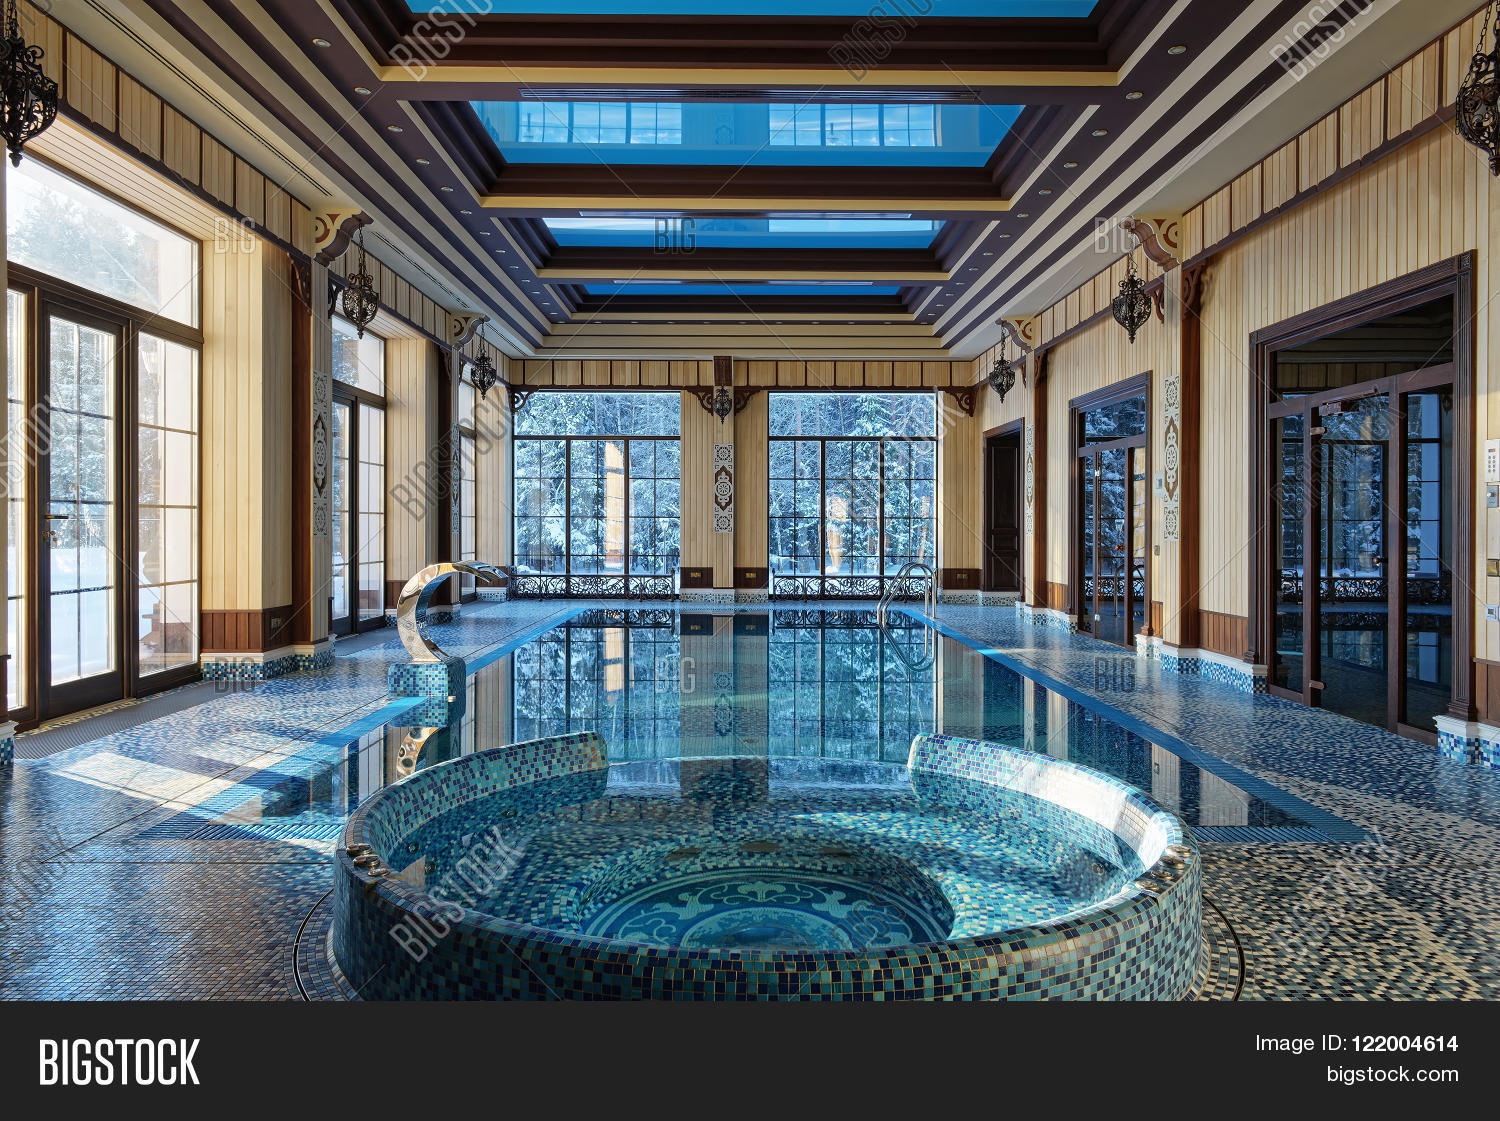 Interior Design Home Indoor Pool Image Photo Bigstock